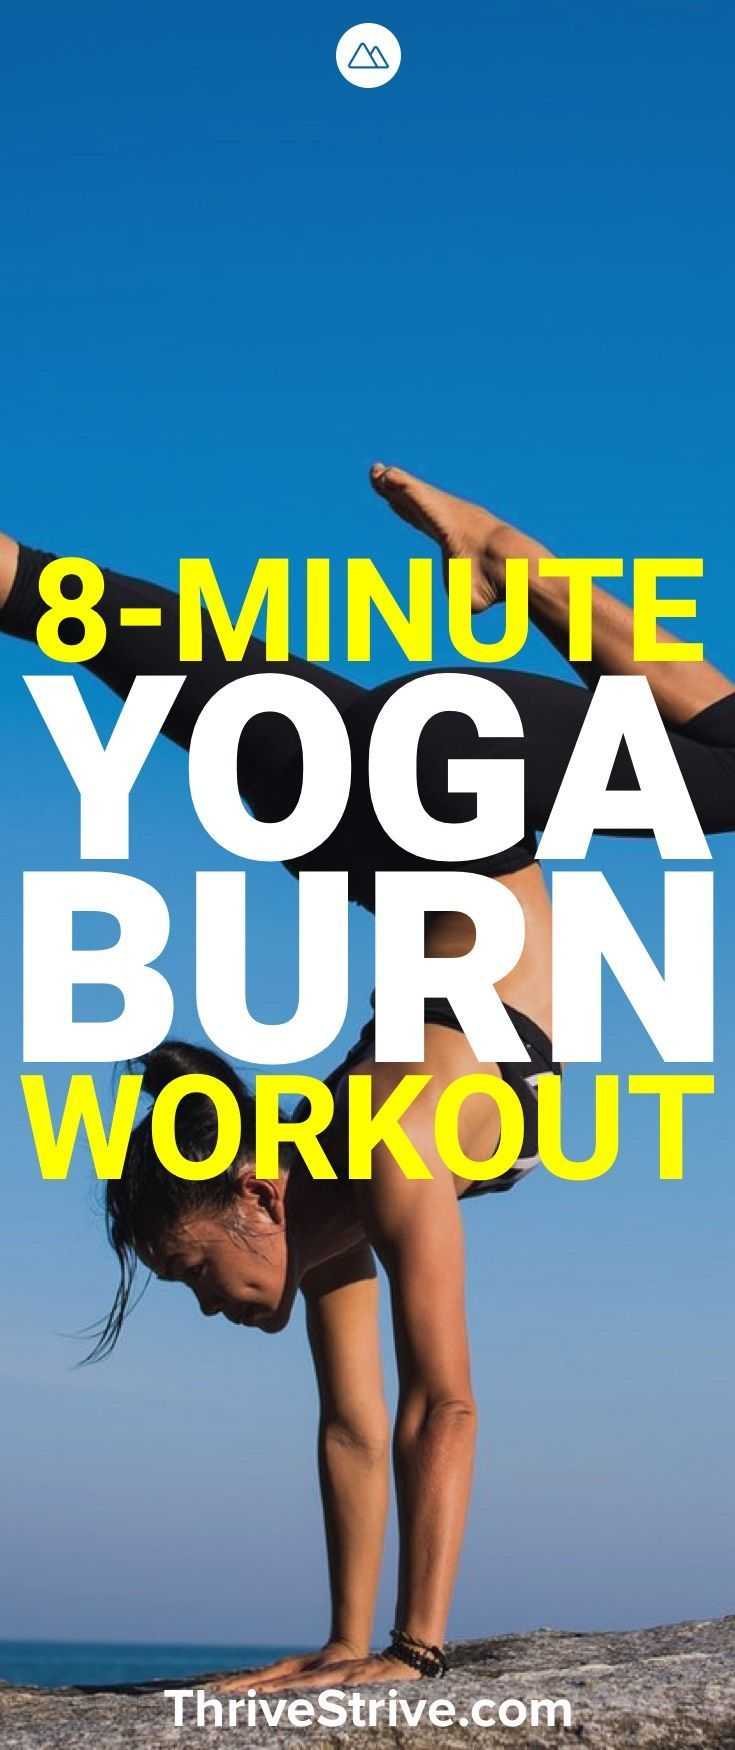 Yoga sessions don't have to be 30 minutes long to feel productive. This 8-mi...